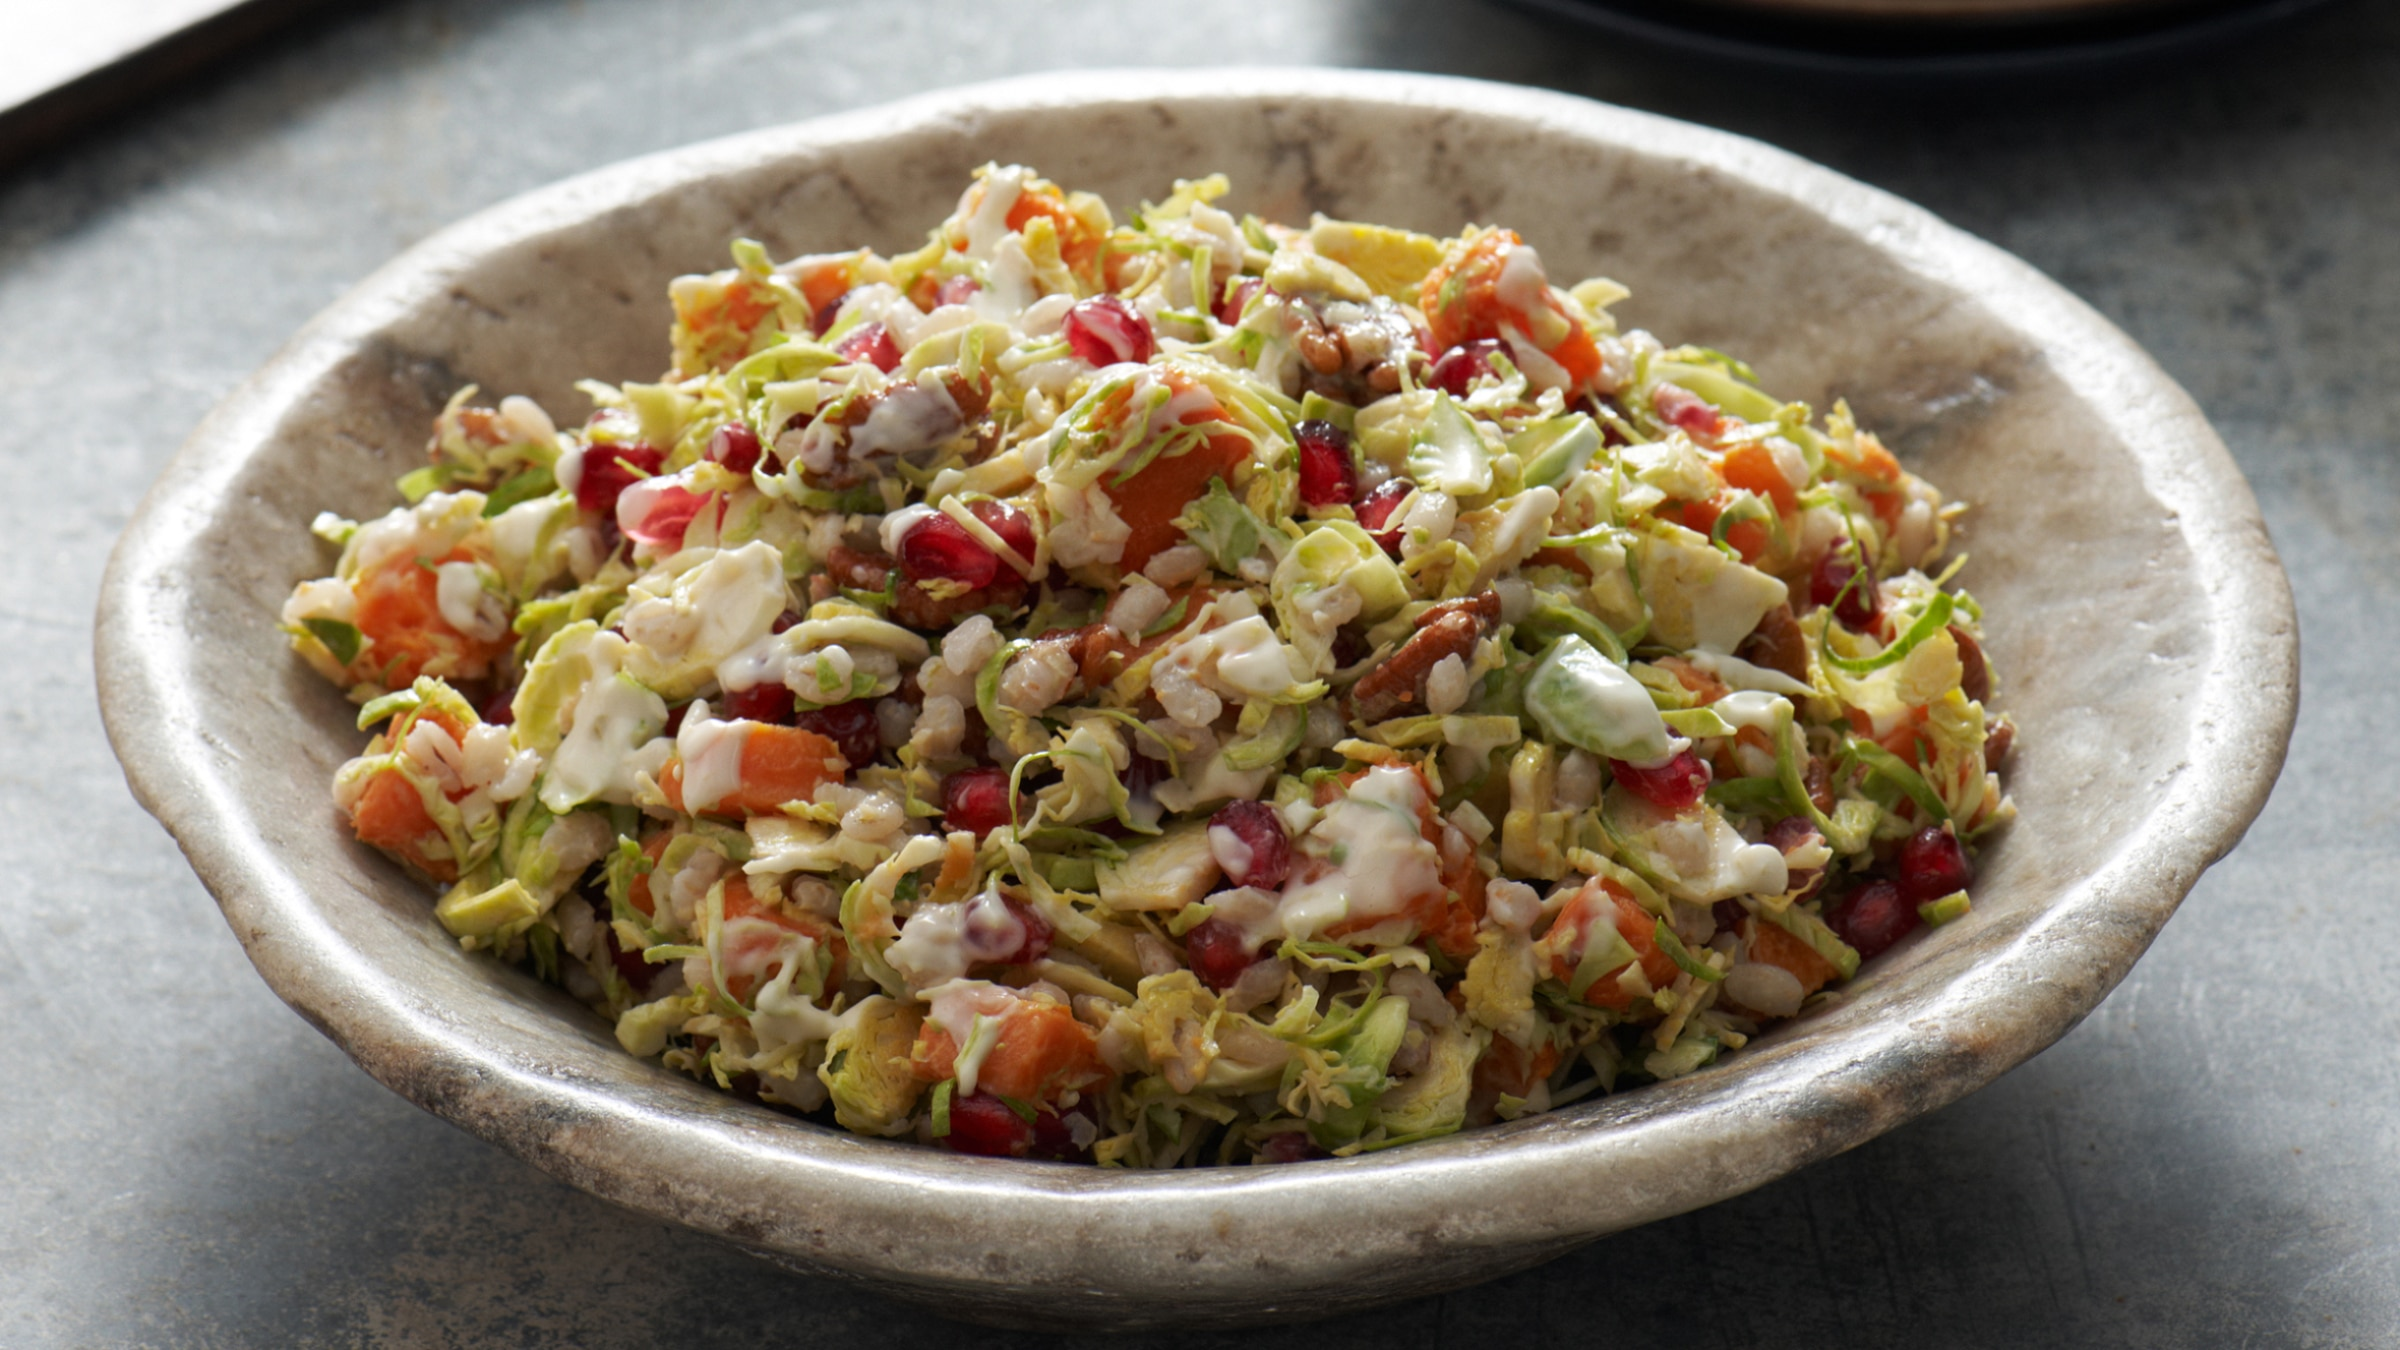 Shredded Brussels Sprout and Pomegranate Salad